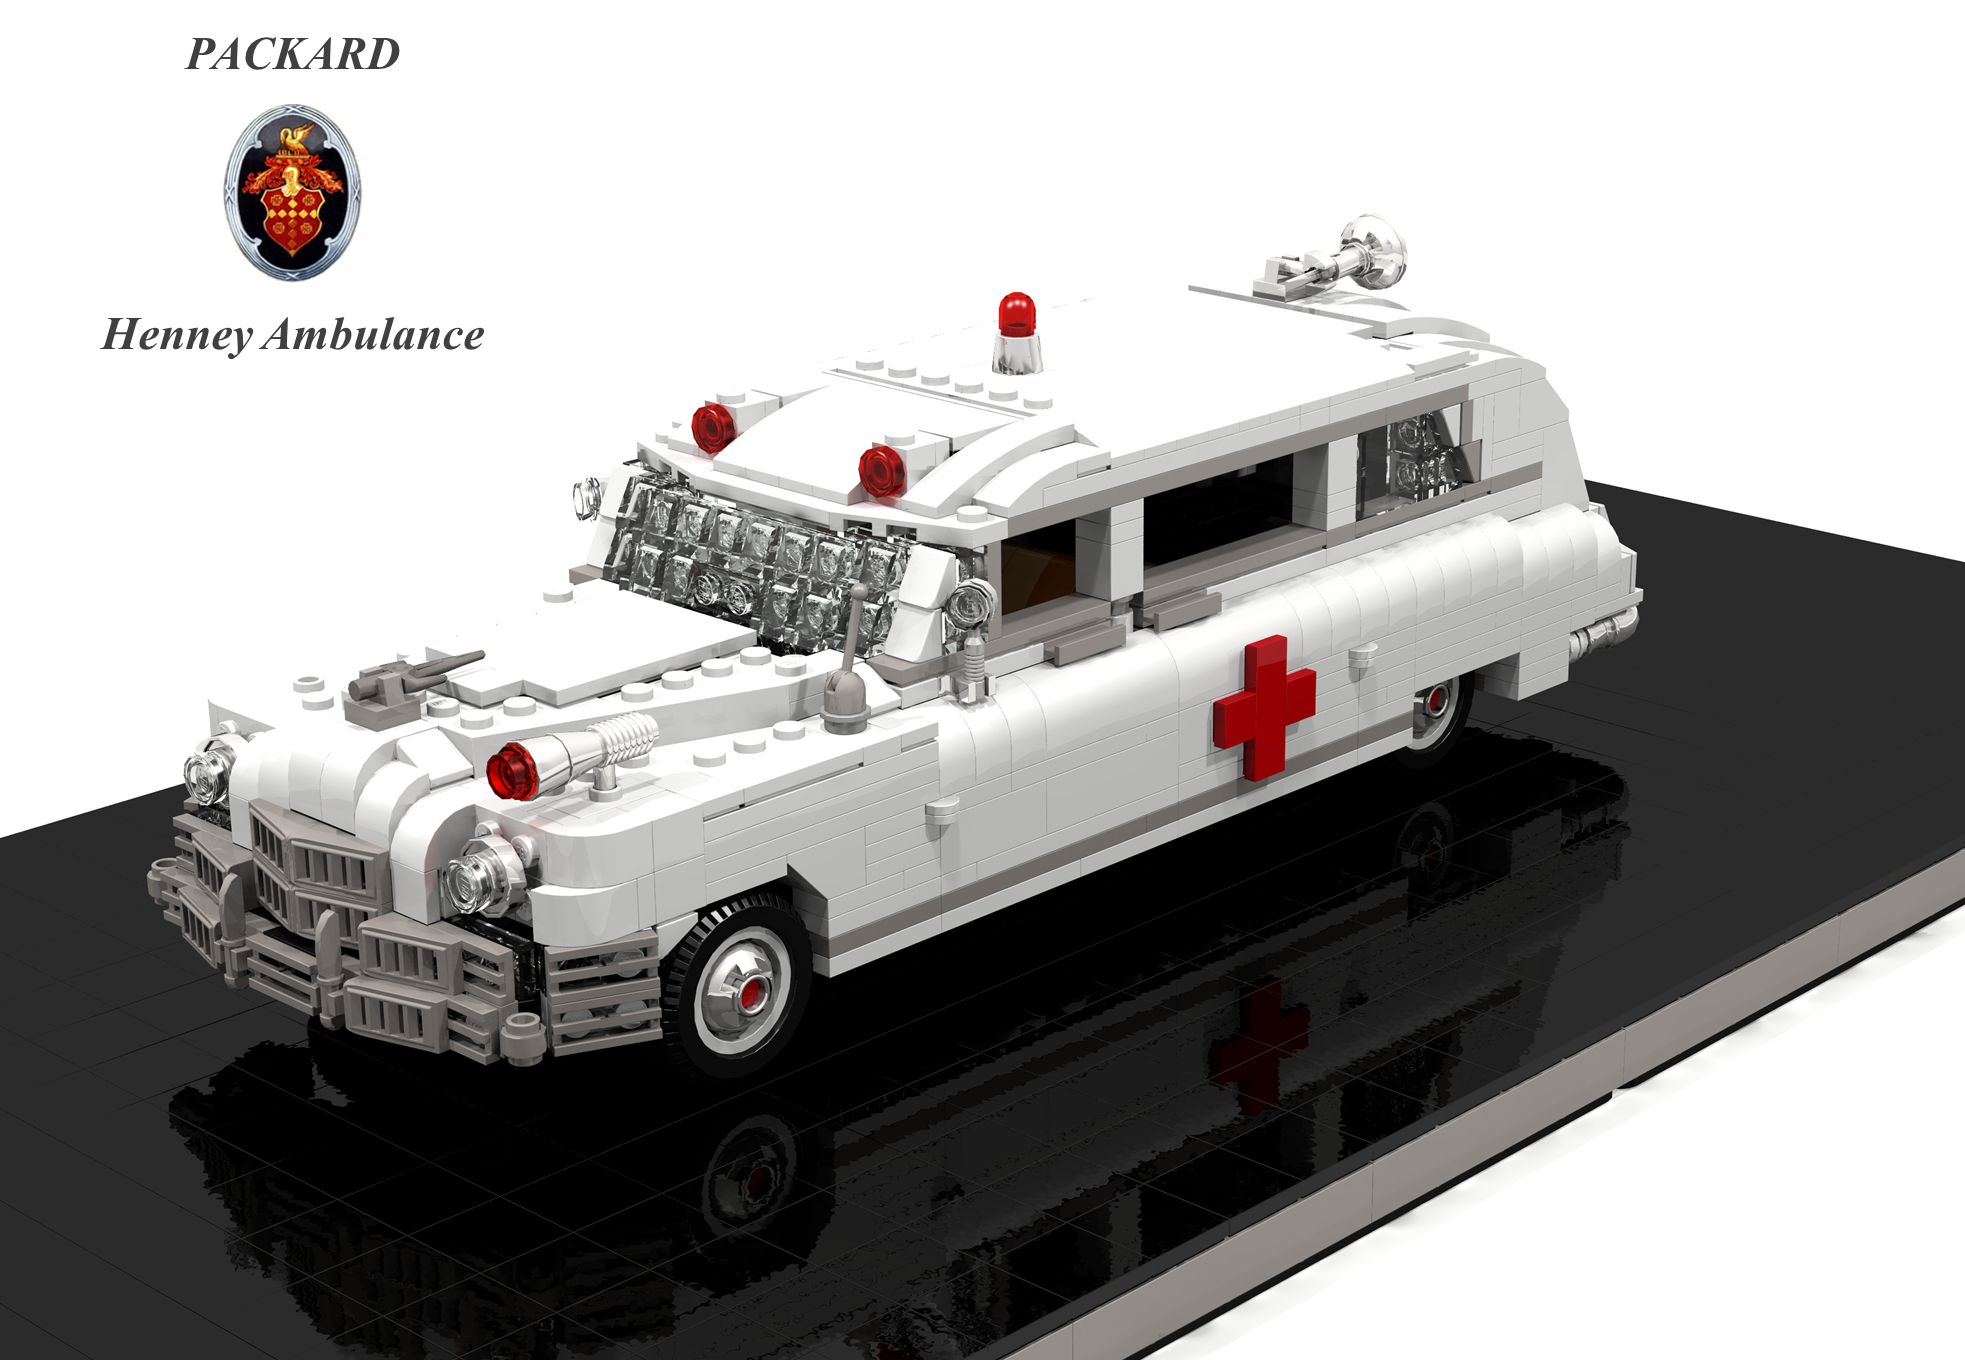 1948_packard_henney_ambulance.png